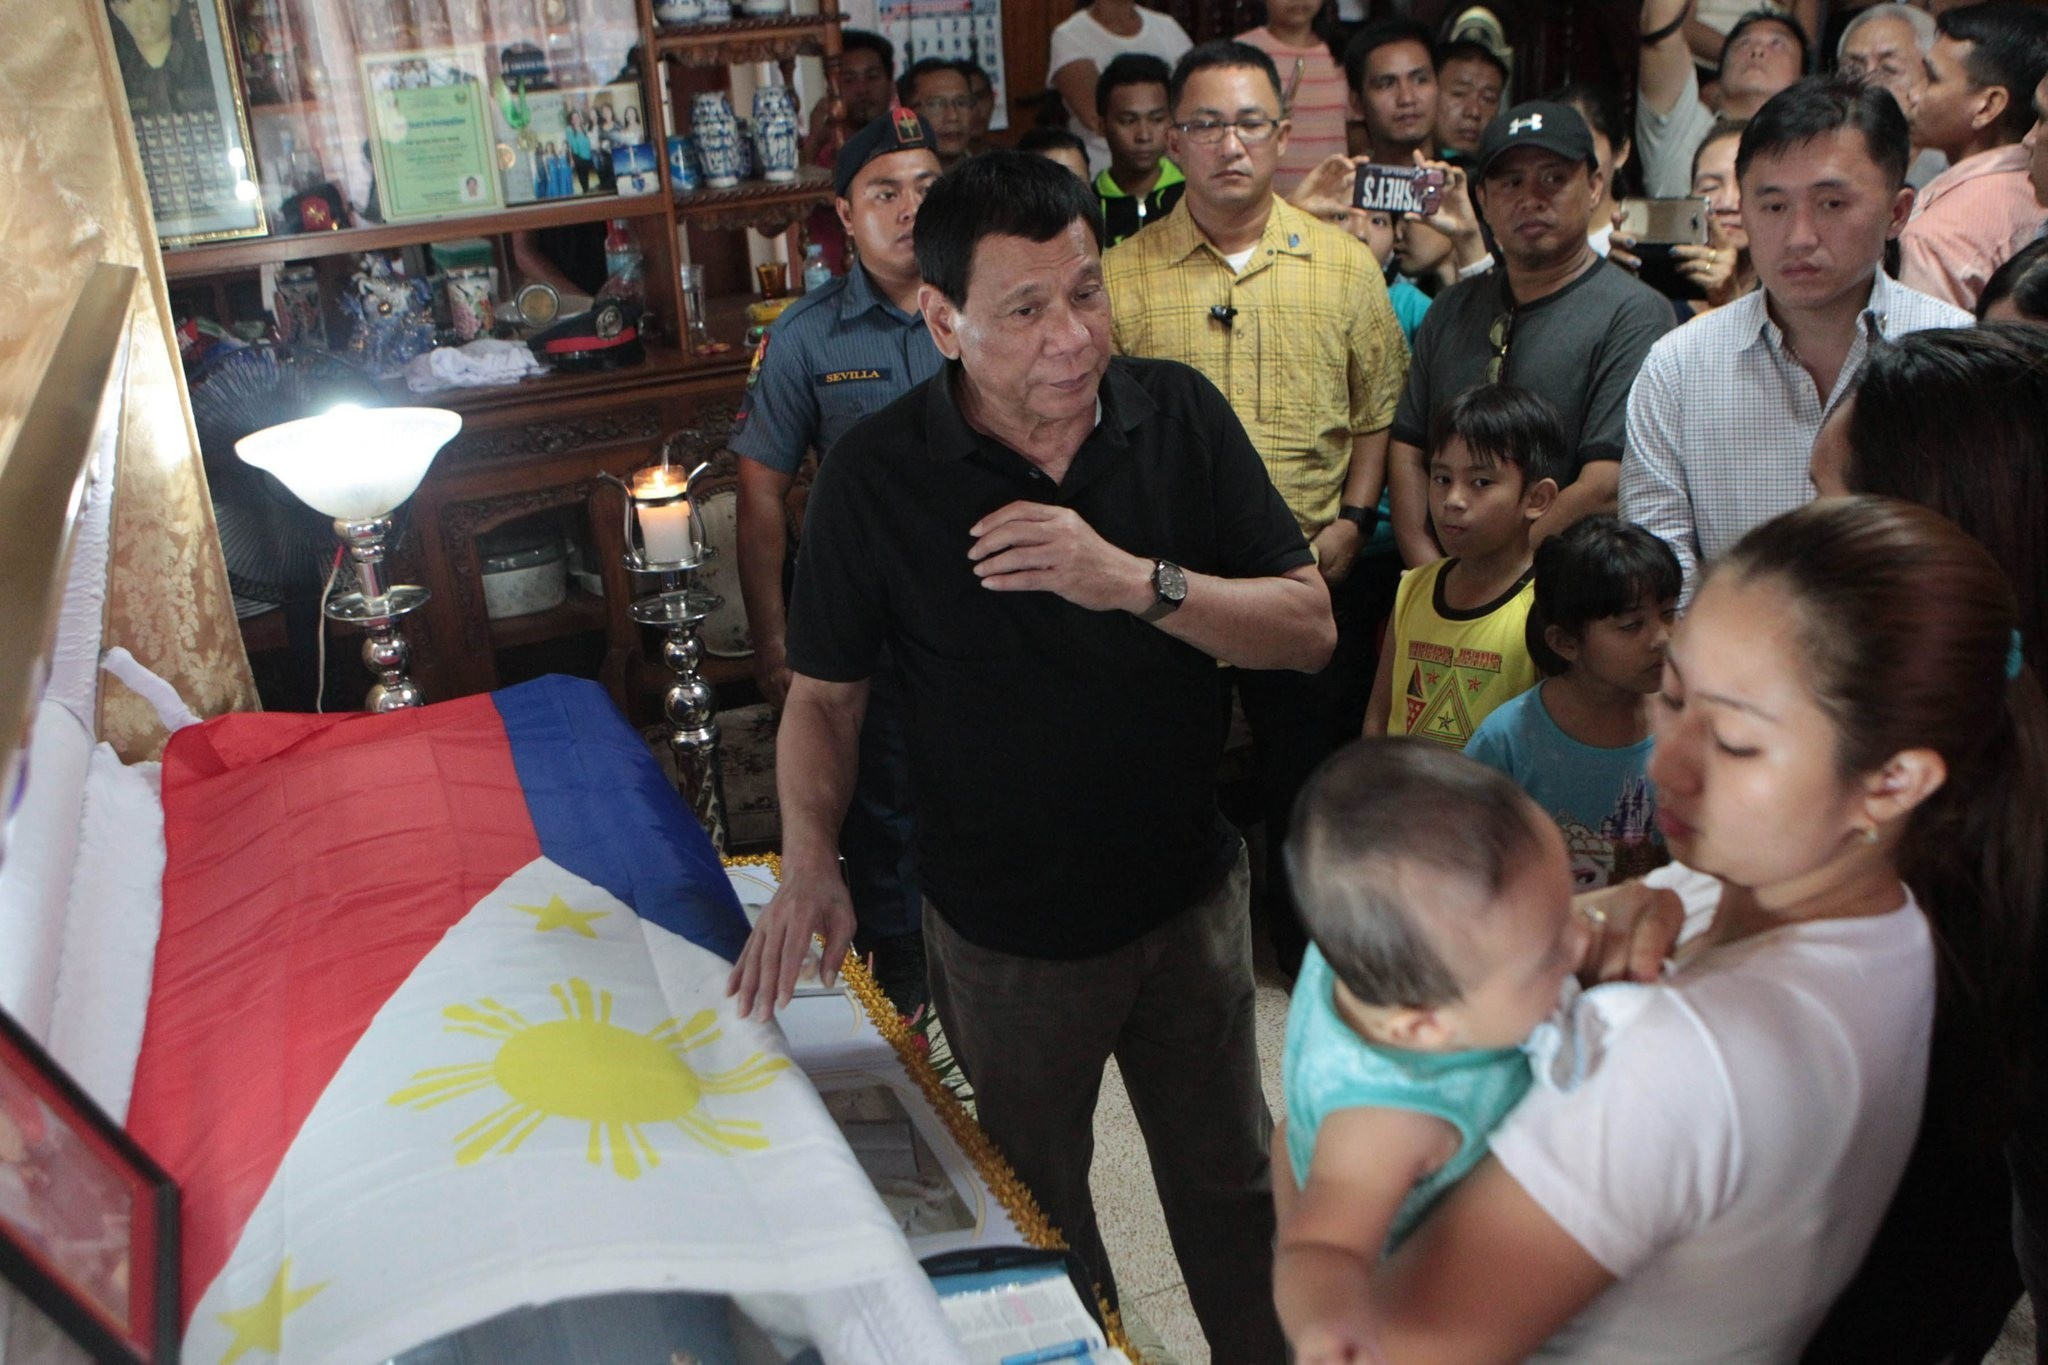 Filipino President Rodrigo Duterte (C) mourning on the coffin of Police Officer Jerome Ruefa, who according to authorities was killed by members of communist rebel group. (EPA Photo)